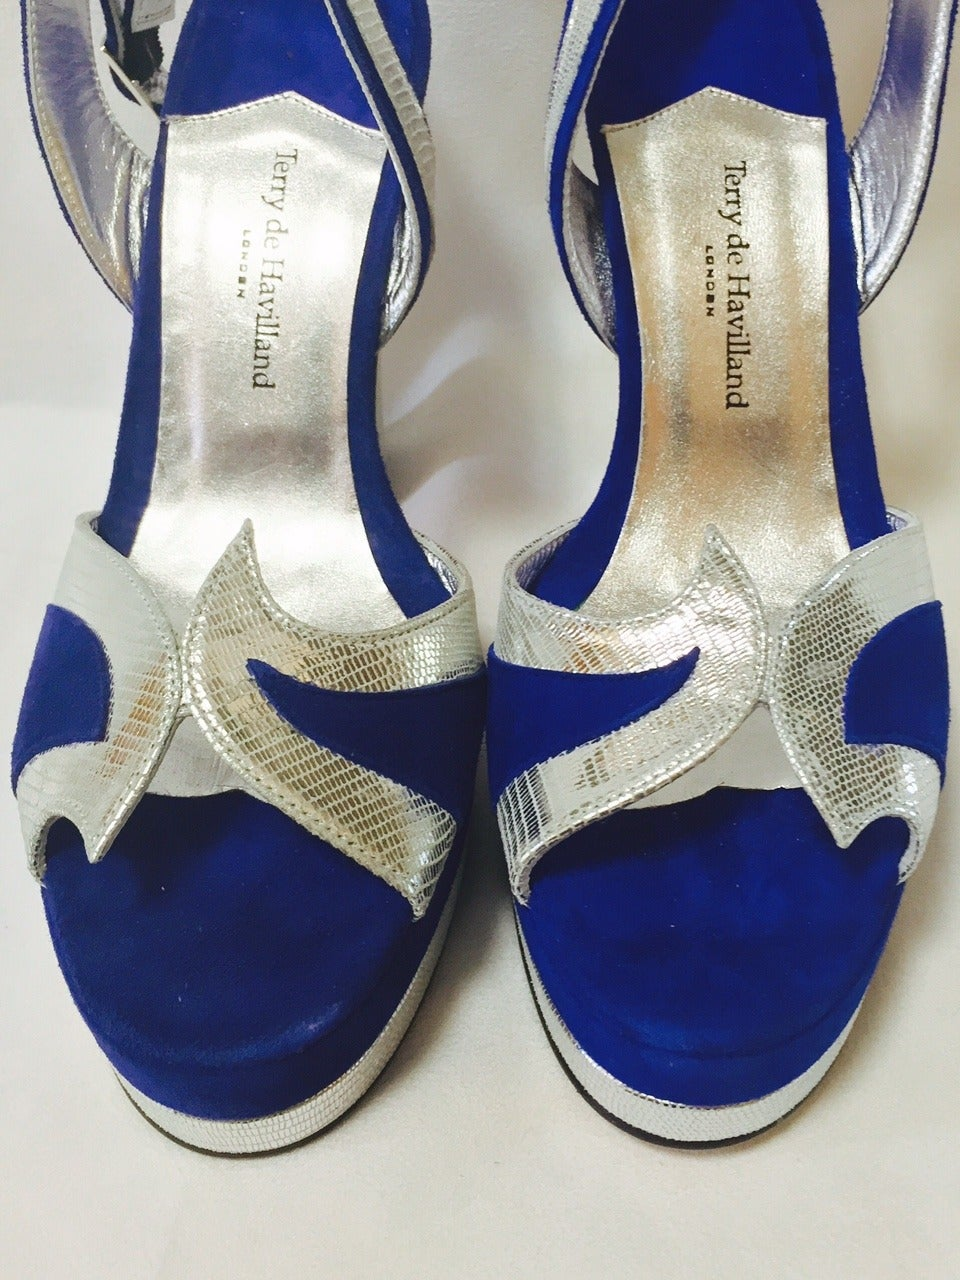 New Terry de Havilland Blue Suede Platform Stacked High Heel Sandals In New never worn Condition For Sale In Palm Beach, FL